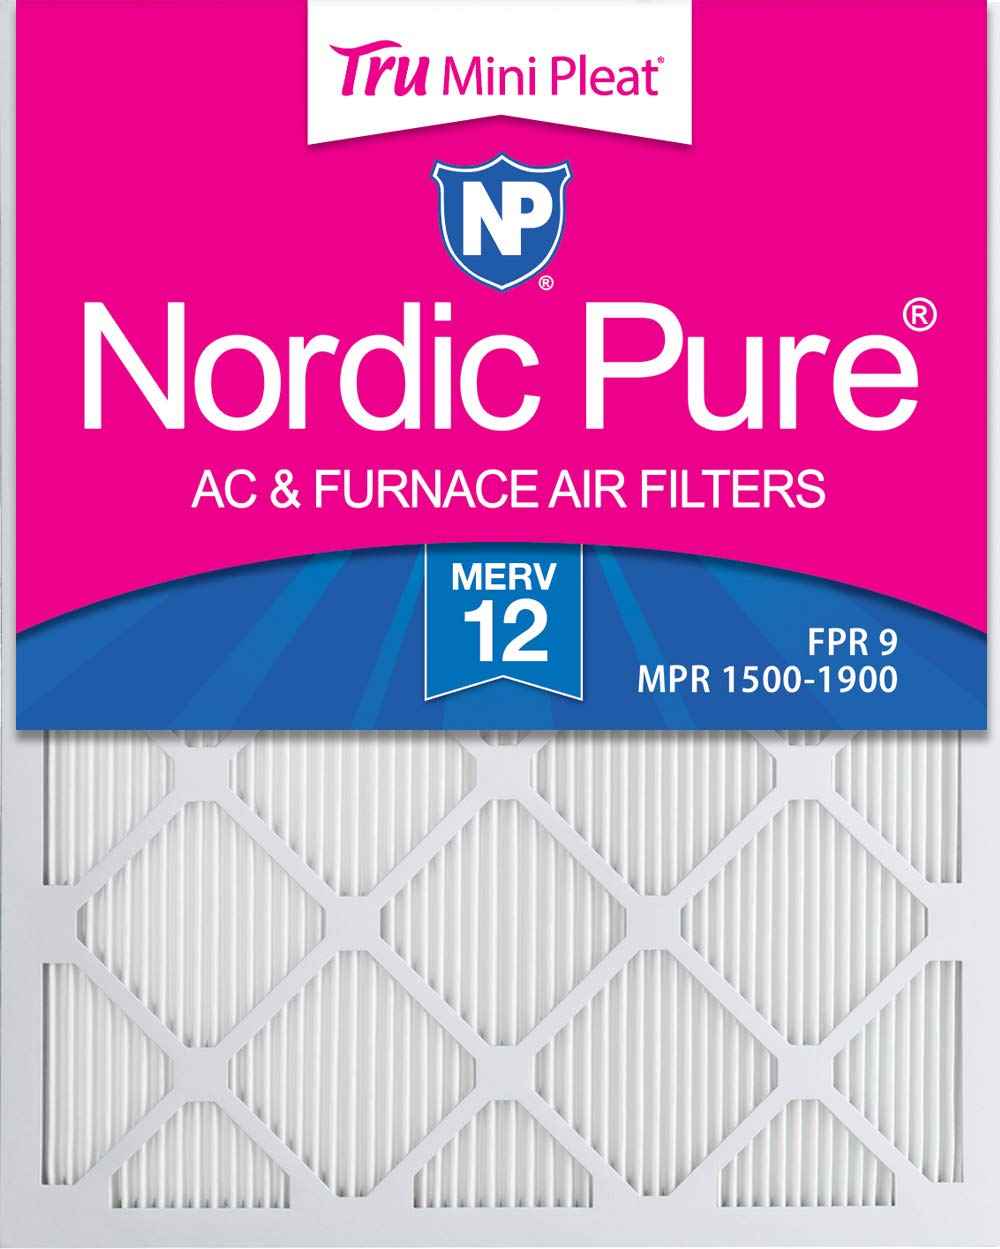 Nordic Pure 16x24x1 MERV 12 Tru Mini Pleat AC Furnace Air Filters 4 Pack